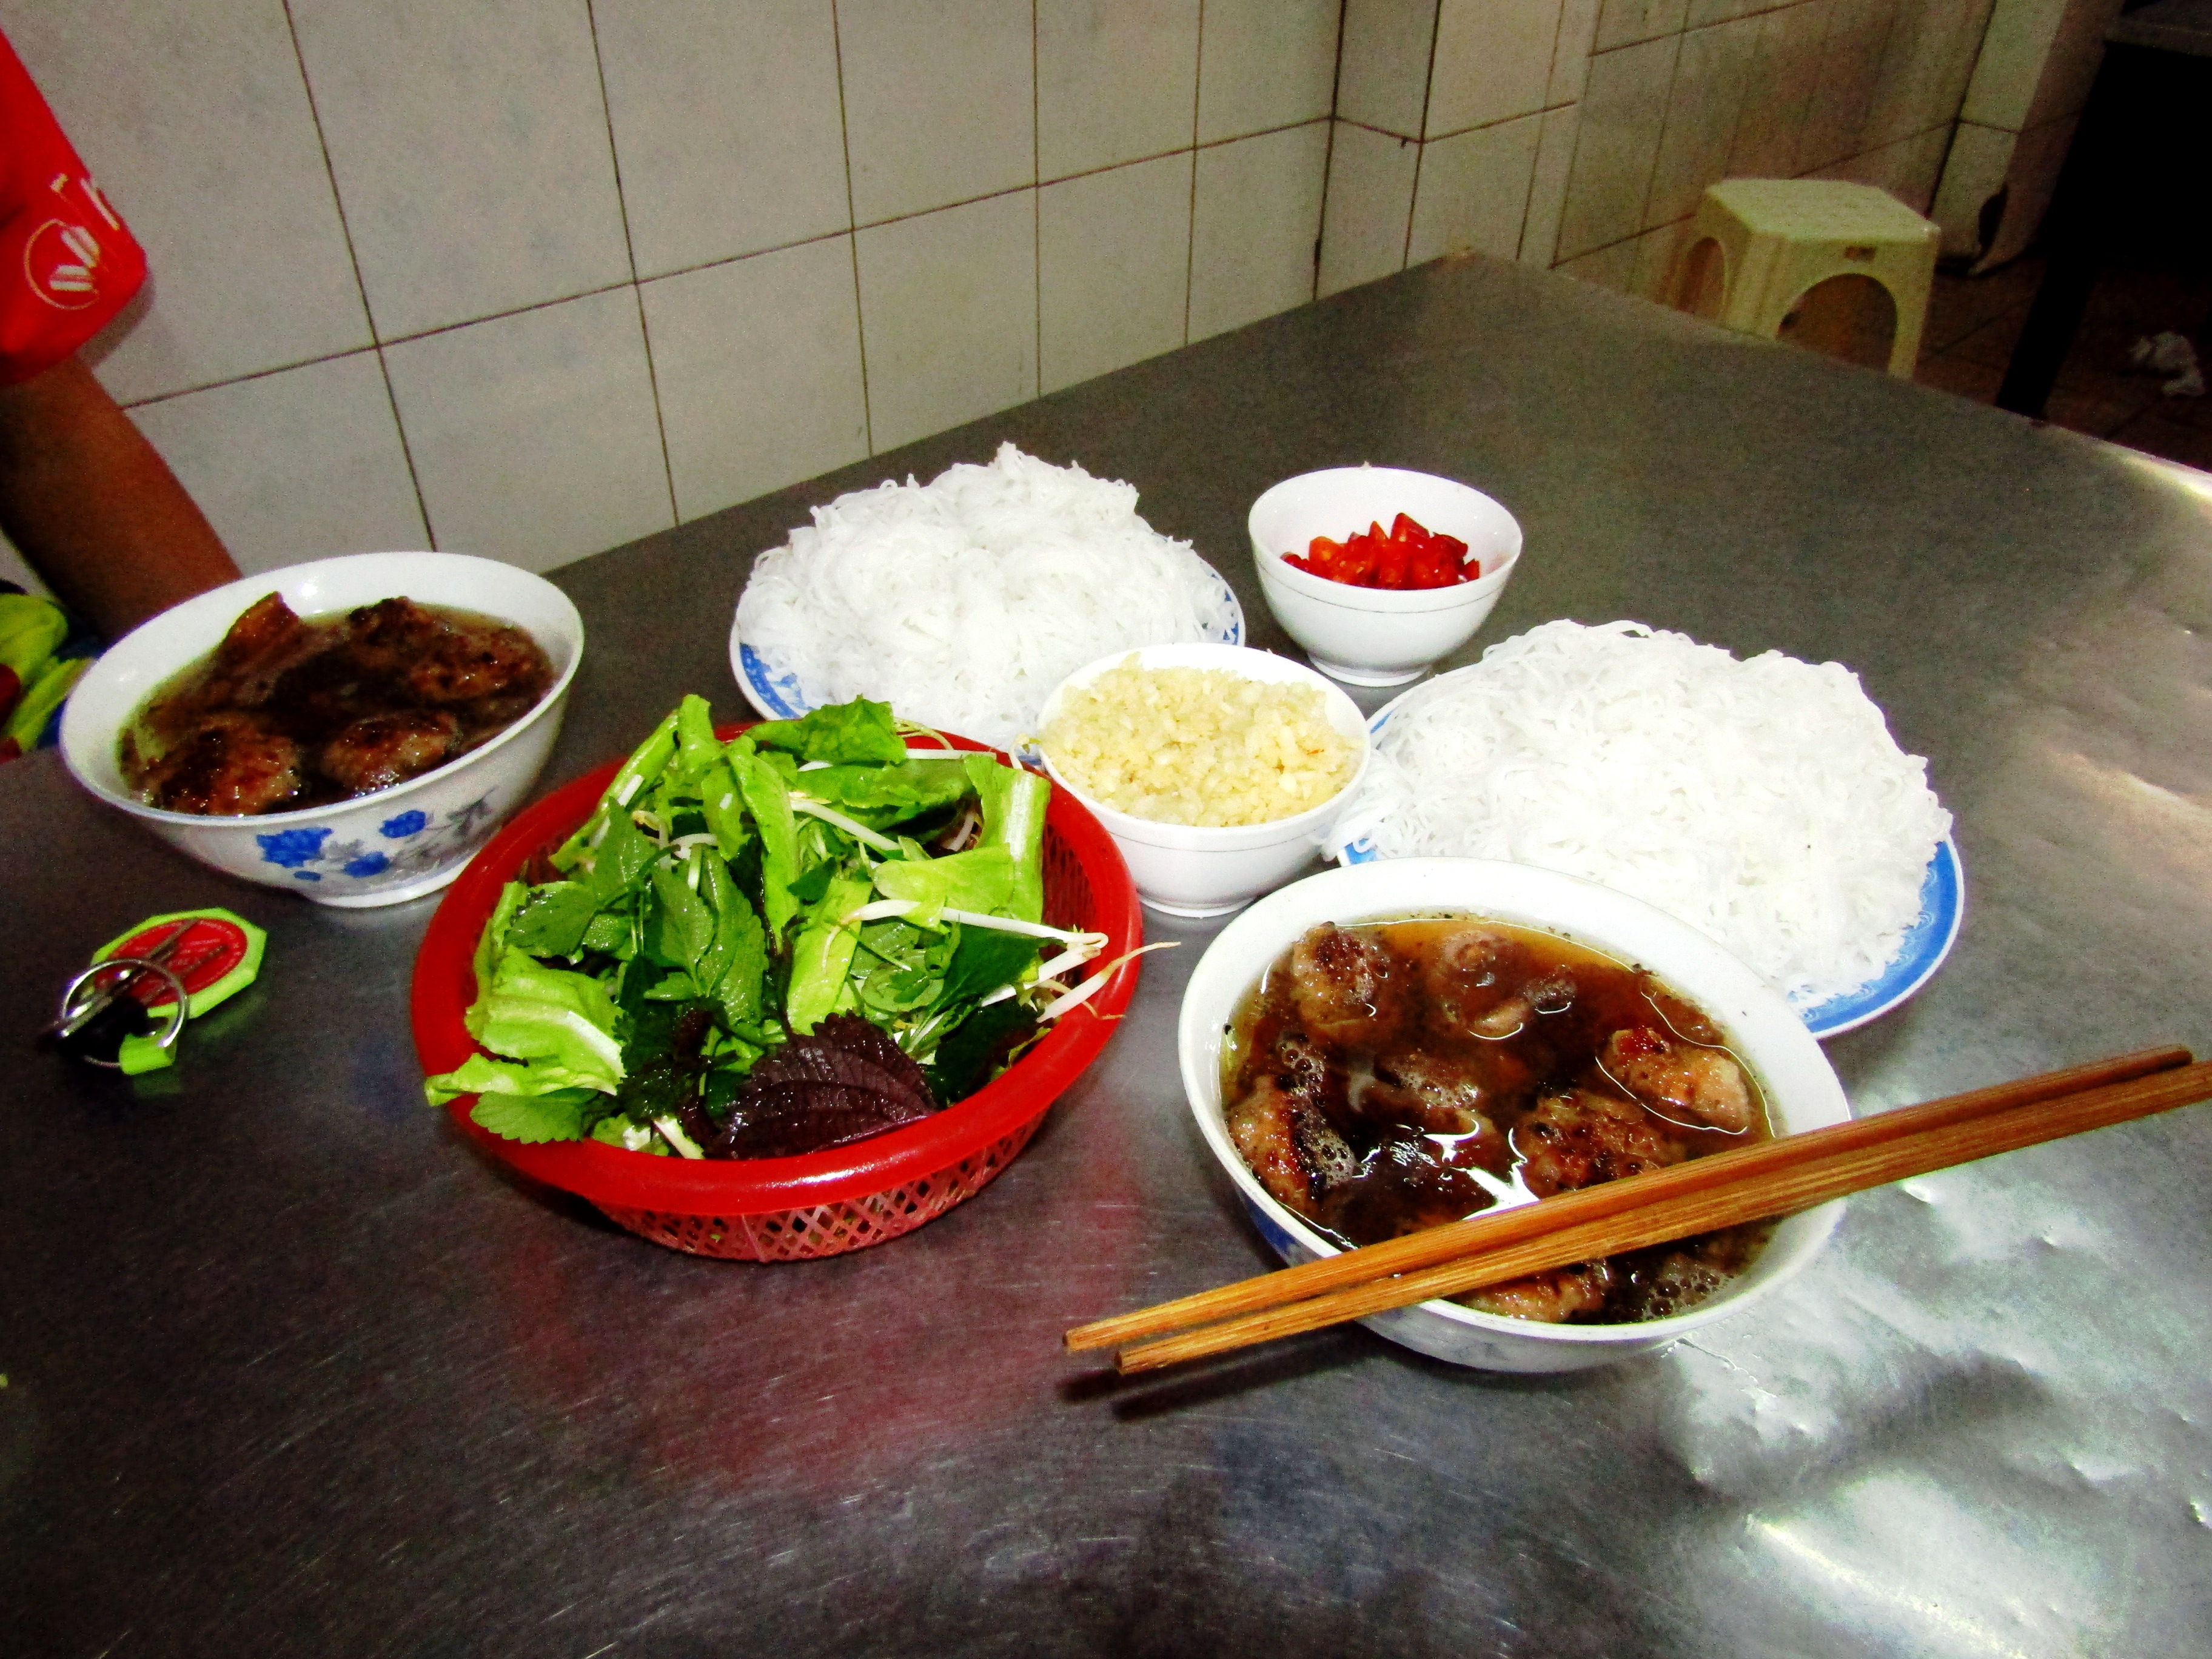 Bún chả - a dish of grilled pork and noodle